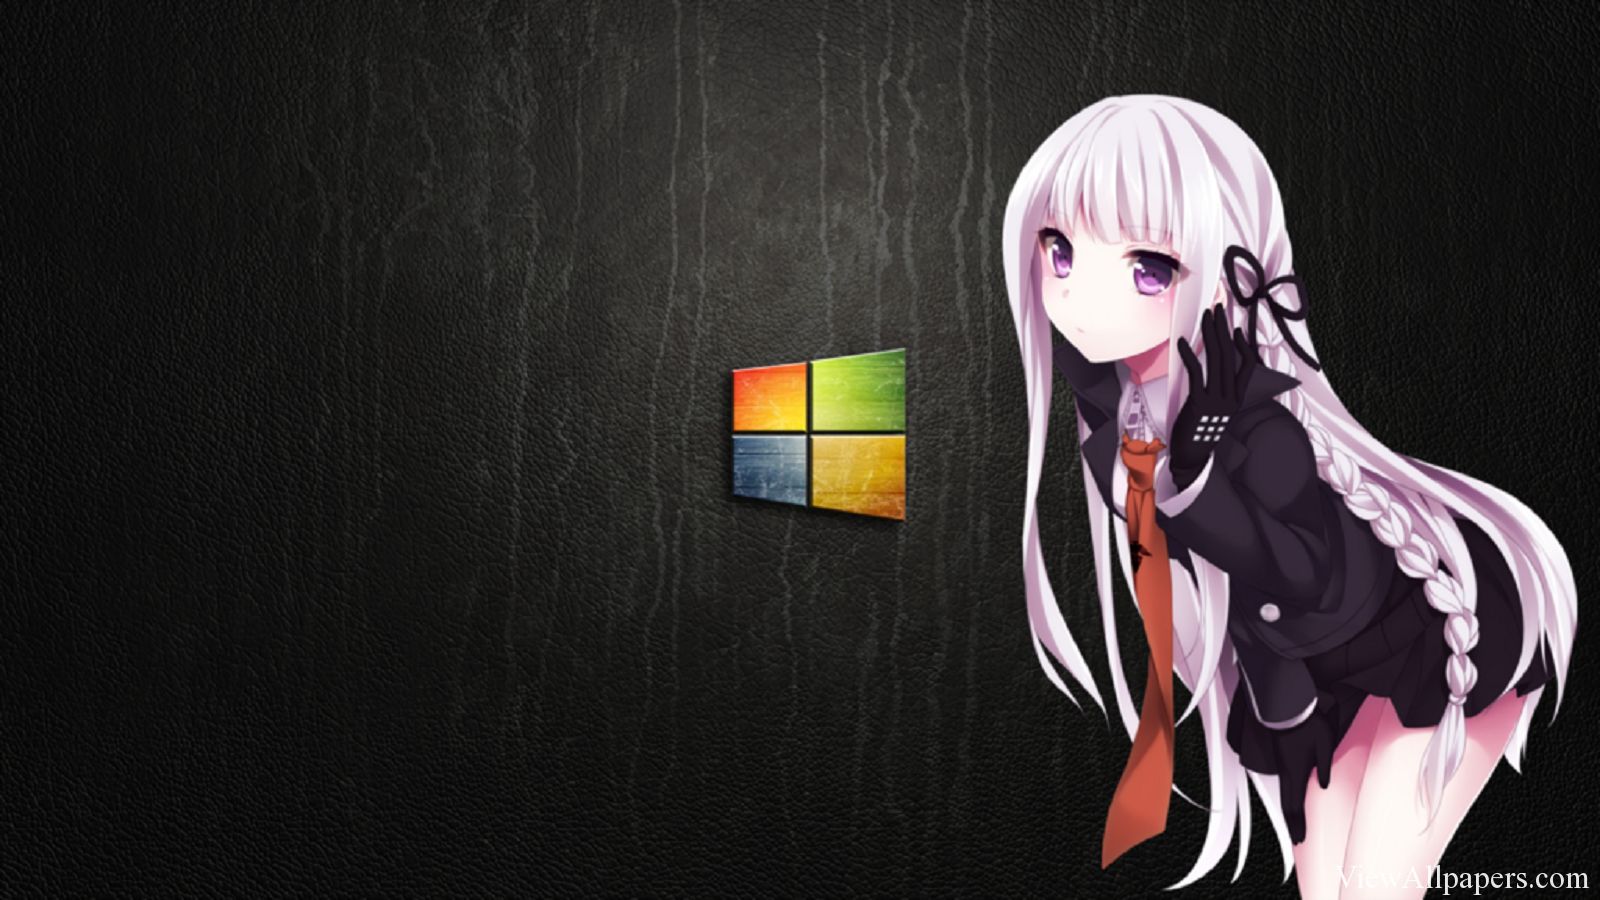 Windows Anime Anime HD Wallpapers 1600x900